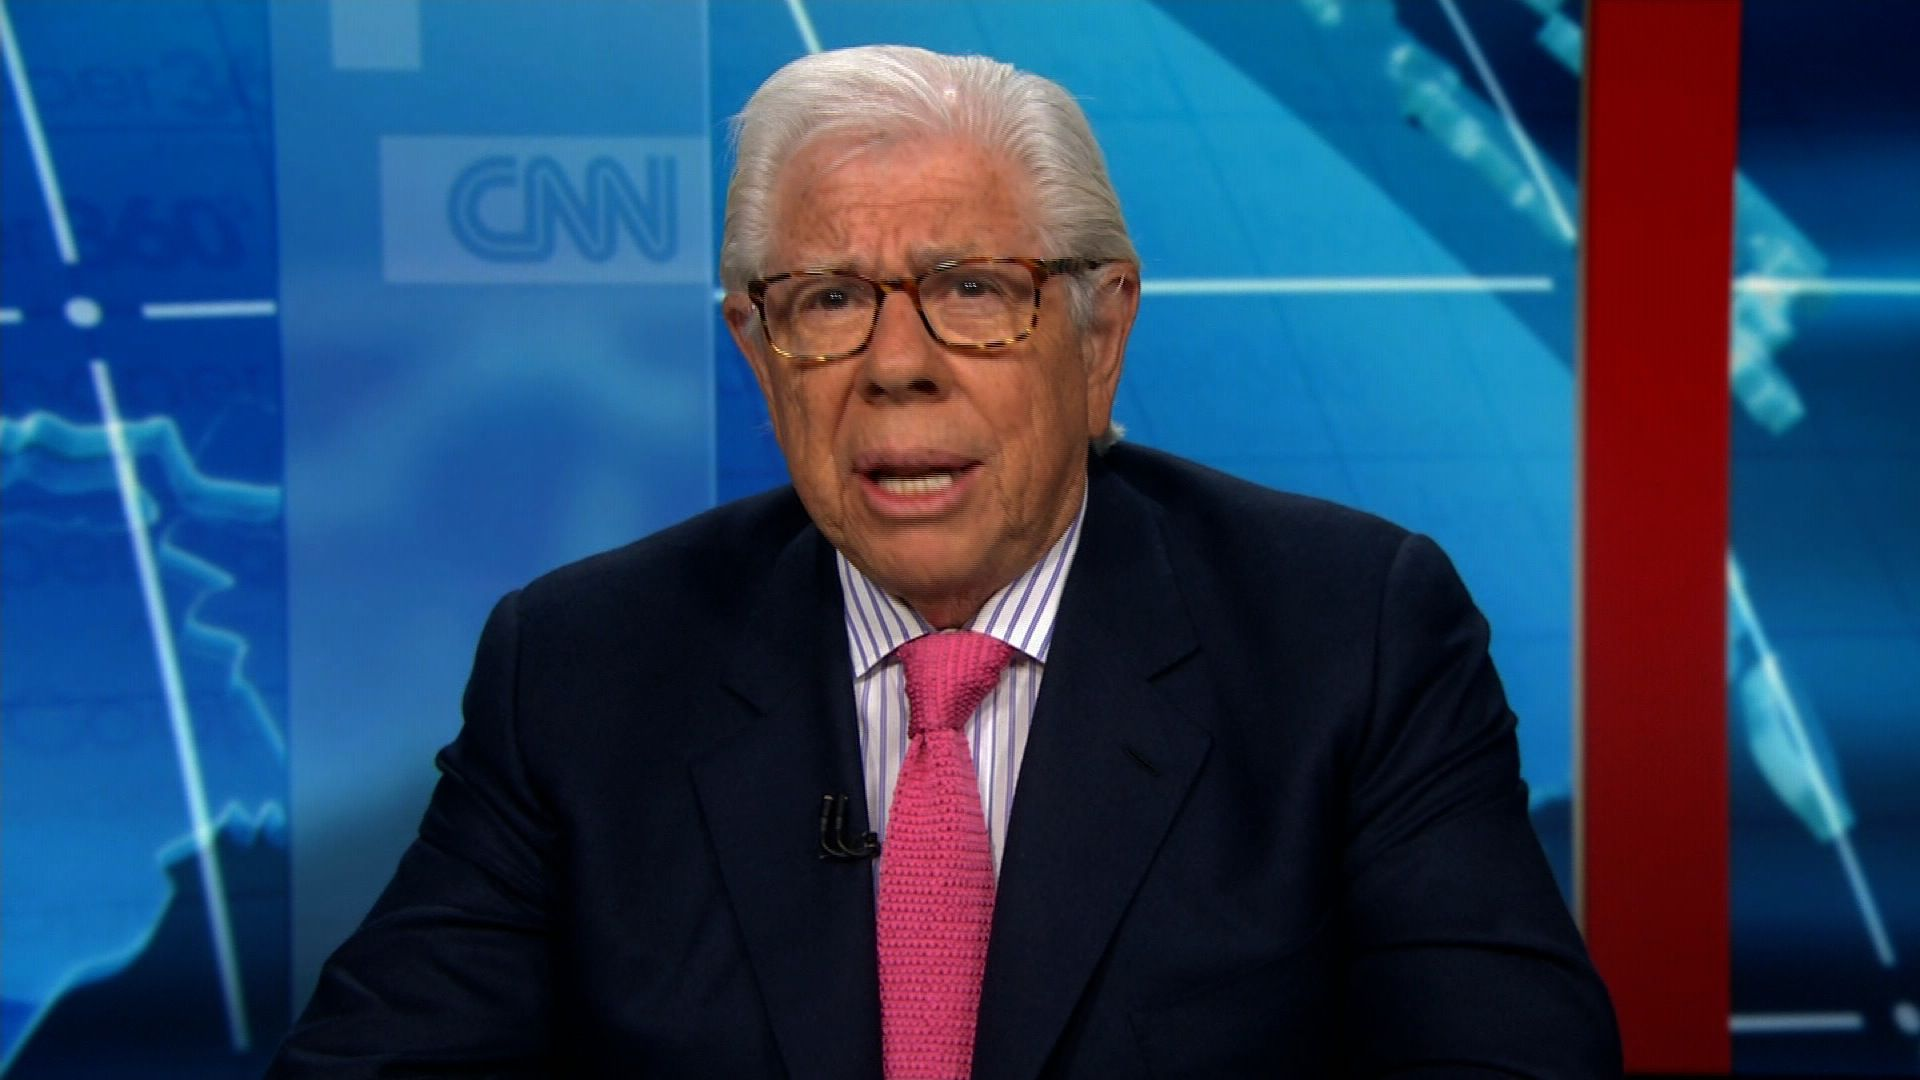 'We are in a civil war' against the 'most radical political movement of our lifetimes': Carl Bernstein